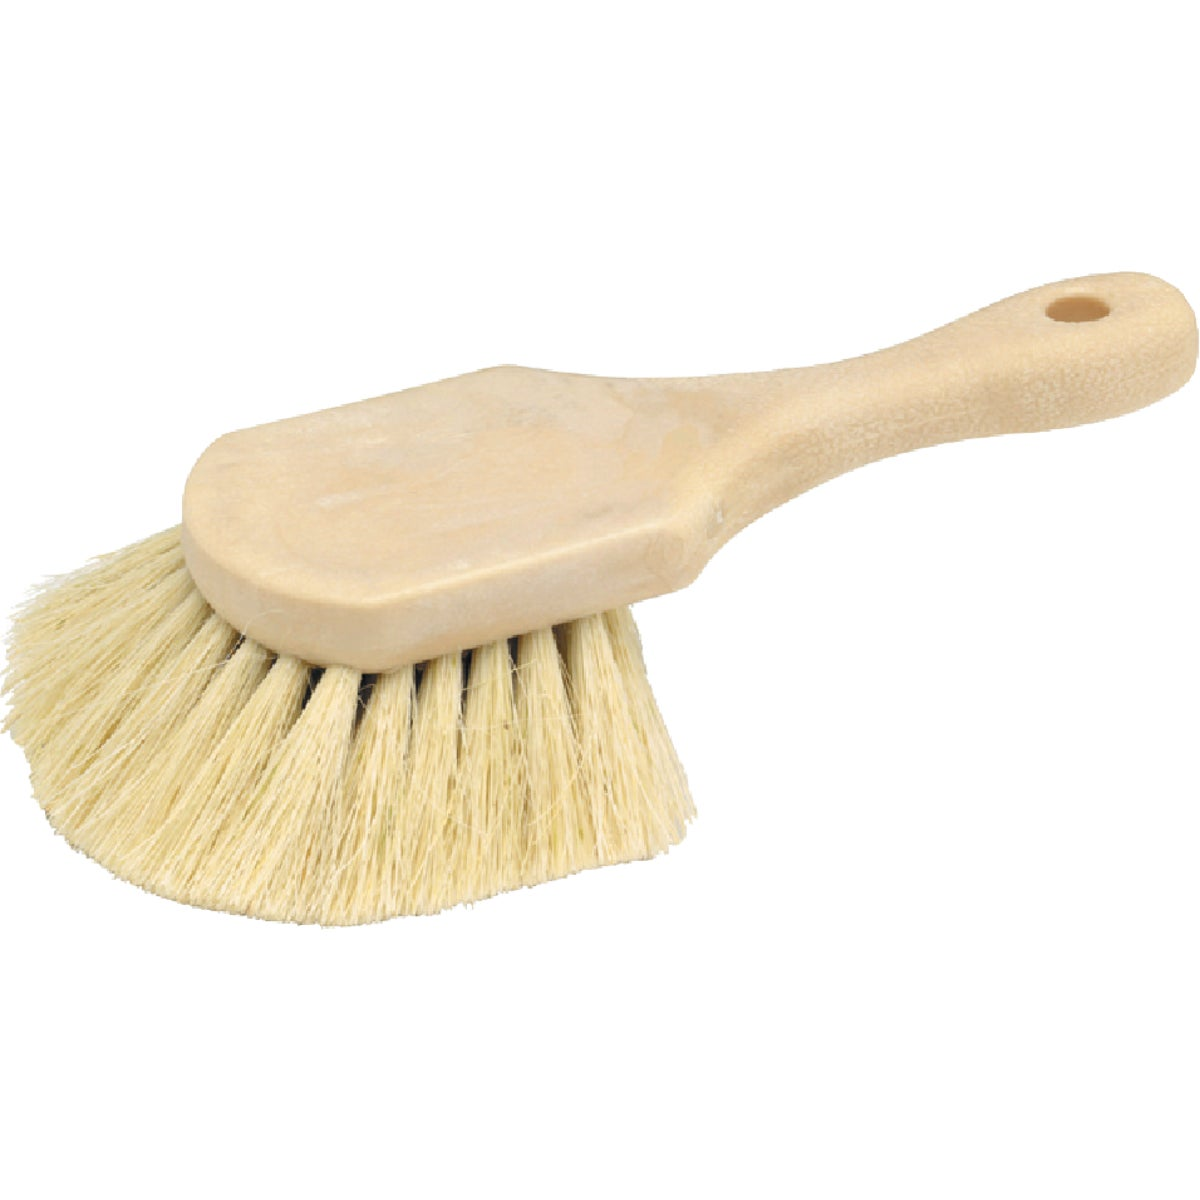 "8"" UTILITY SCRUB BRUSH - 16522 by Marshalltown Trowel"